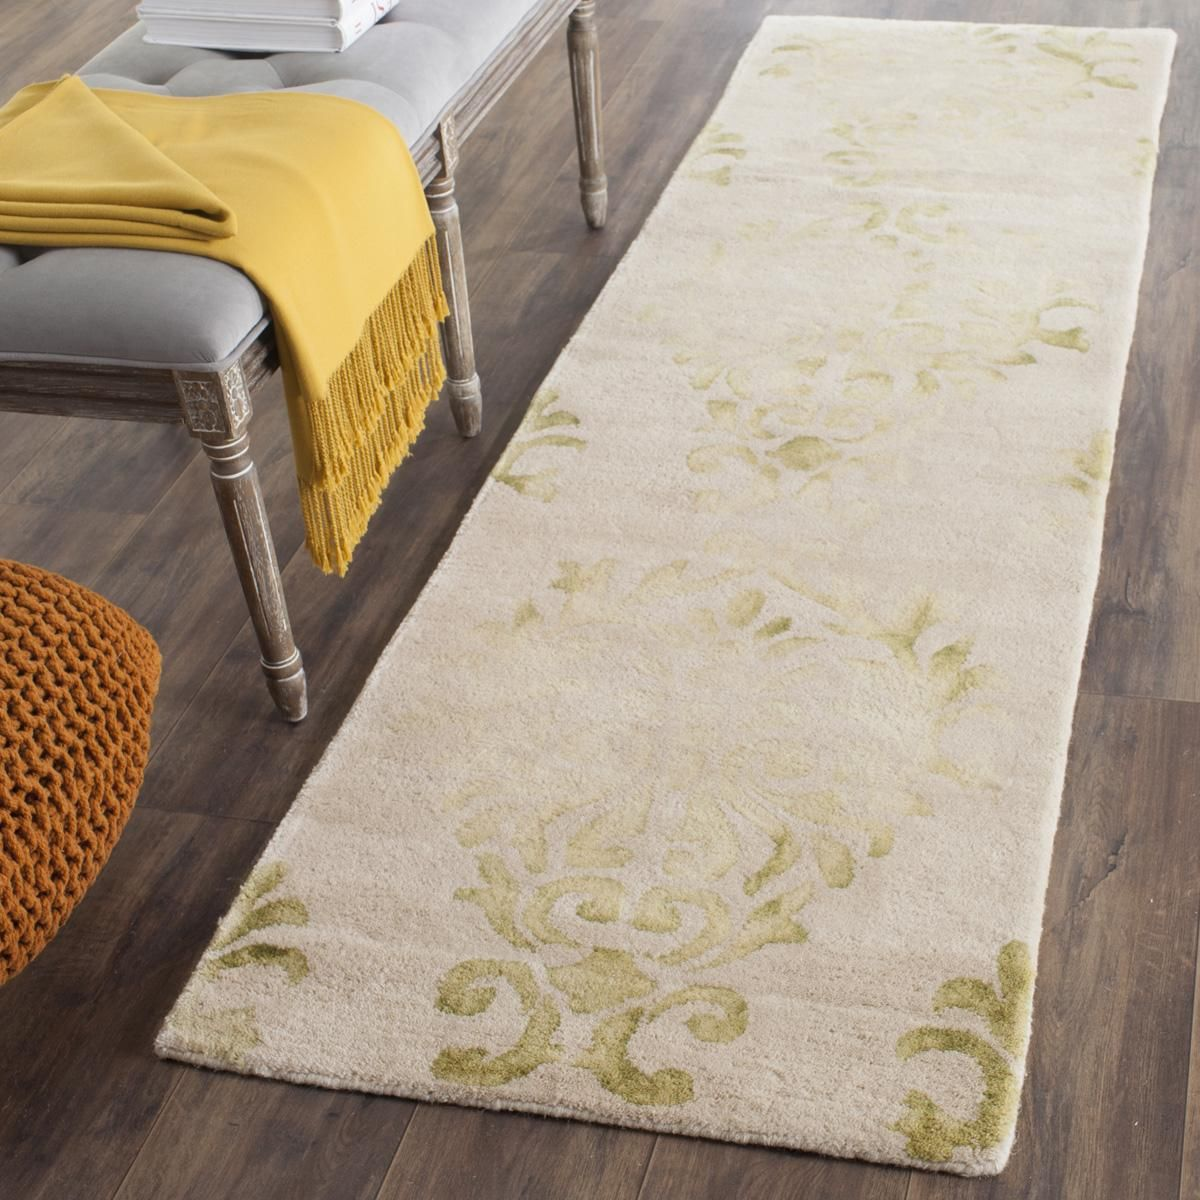 Dip Dye Collection DDY516B Color: Beige / Green - #safavieh #safaviehrugs #safaviehrunners #rugrunners #rugs #hallwayrugs #entrywayrugs #staircaserugs #staircasecarpets #entrywaycarpts #bedroomrugs #livingroomrugs #diningroomrugs #kitchenrugs #hallwaydecor #entrywaydecor #shoprugs #runnercarpets #bluerunnerrug #tauperunnerrug